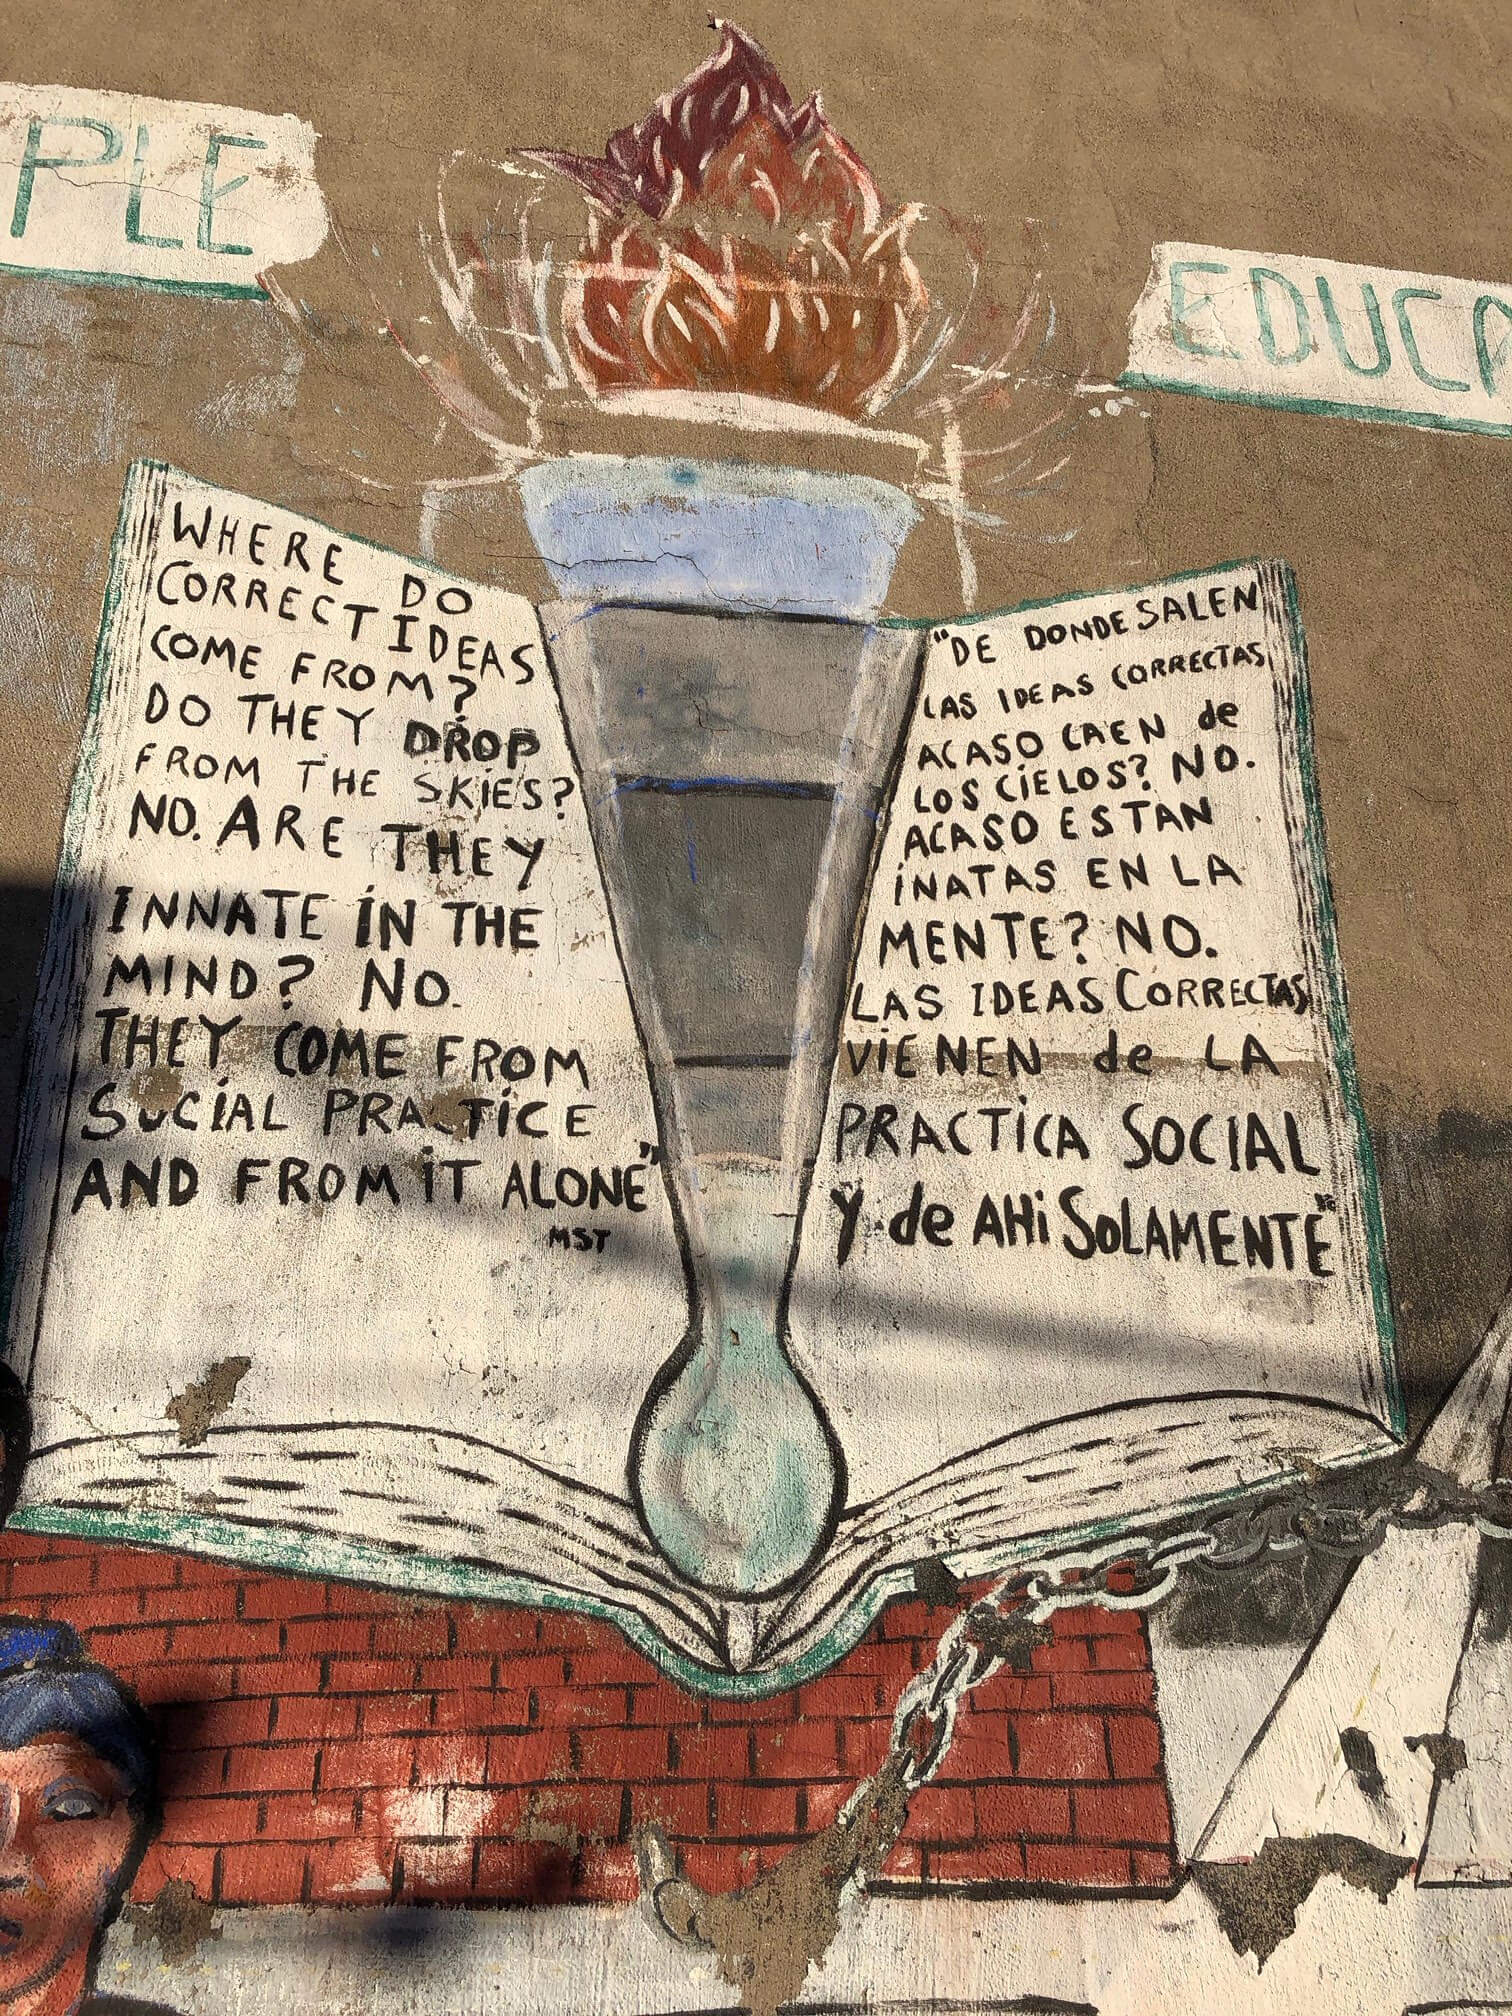 public wall art with statement handwritten about ideas coming from social practices